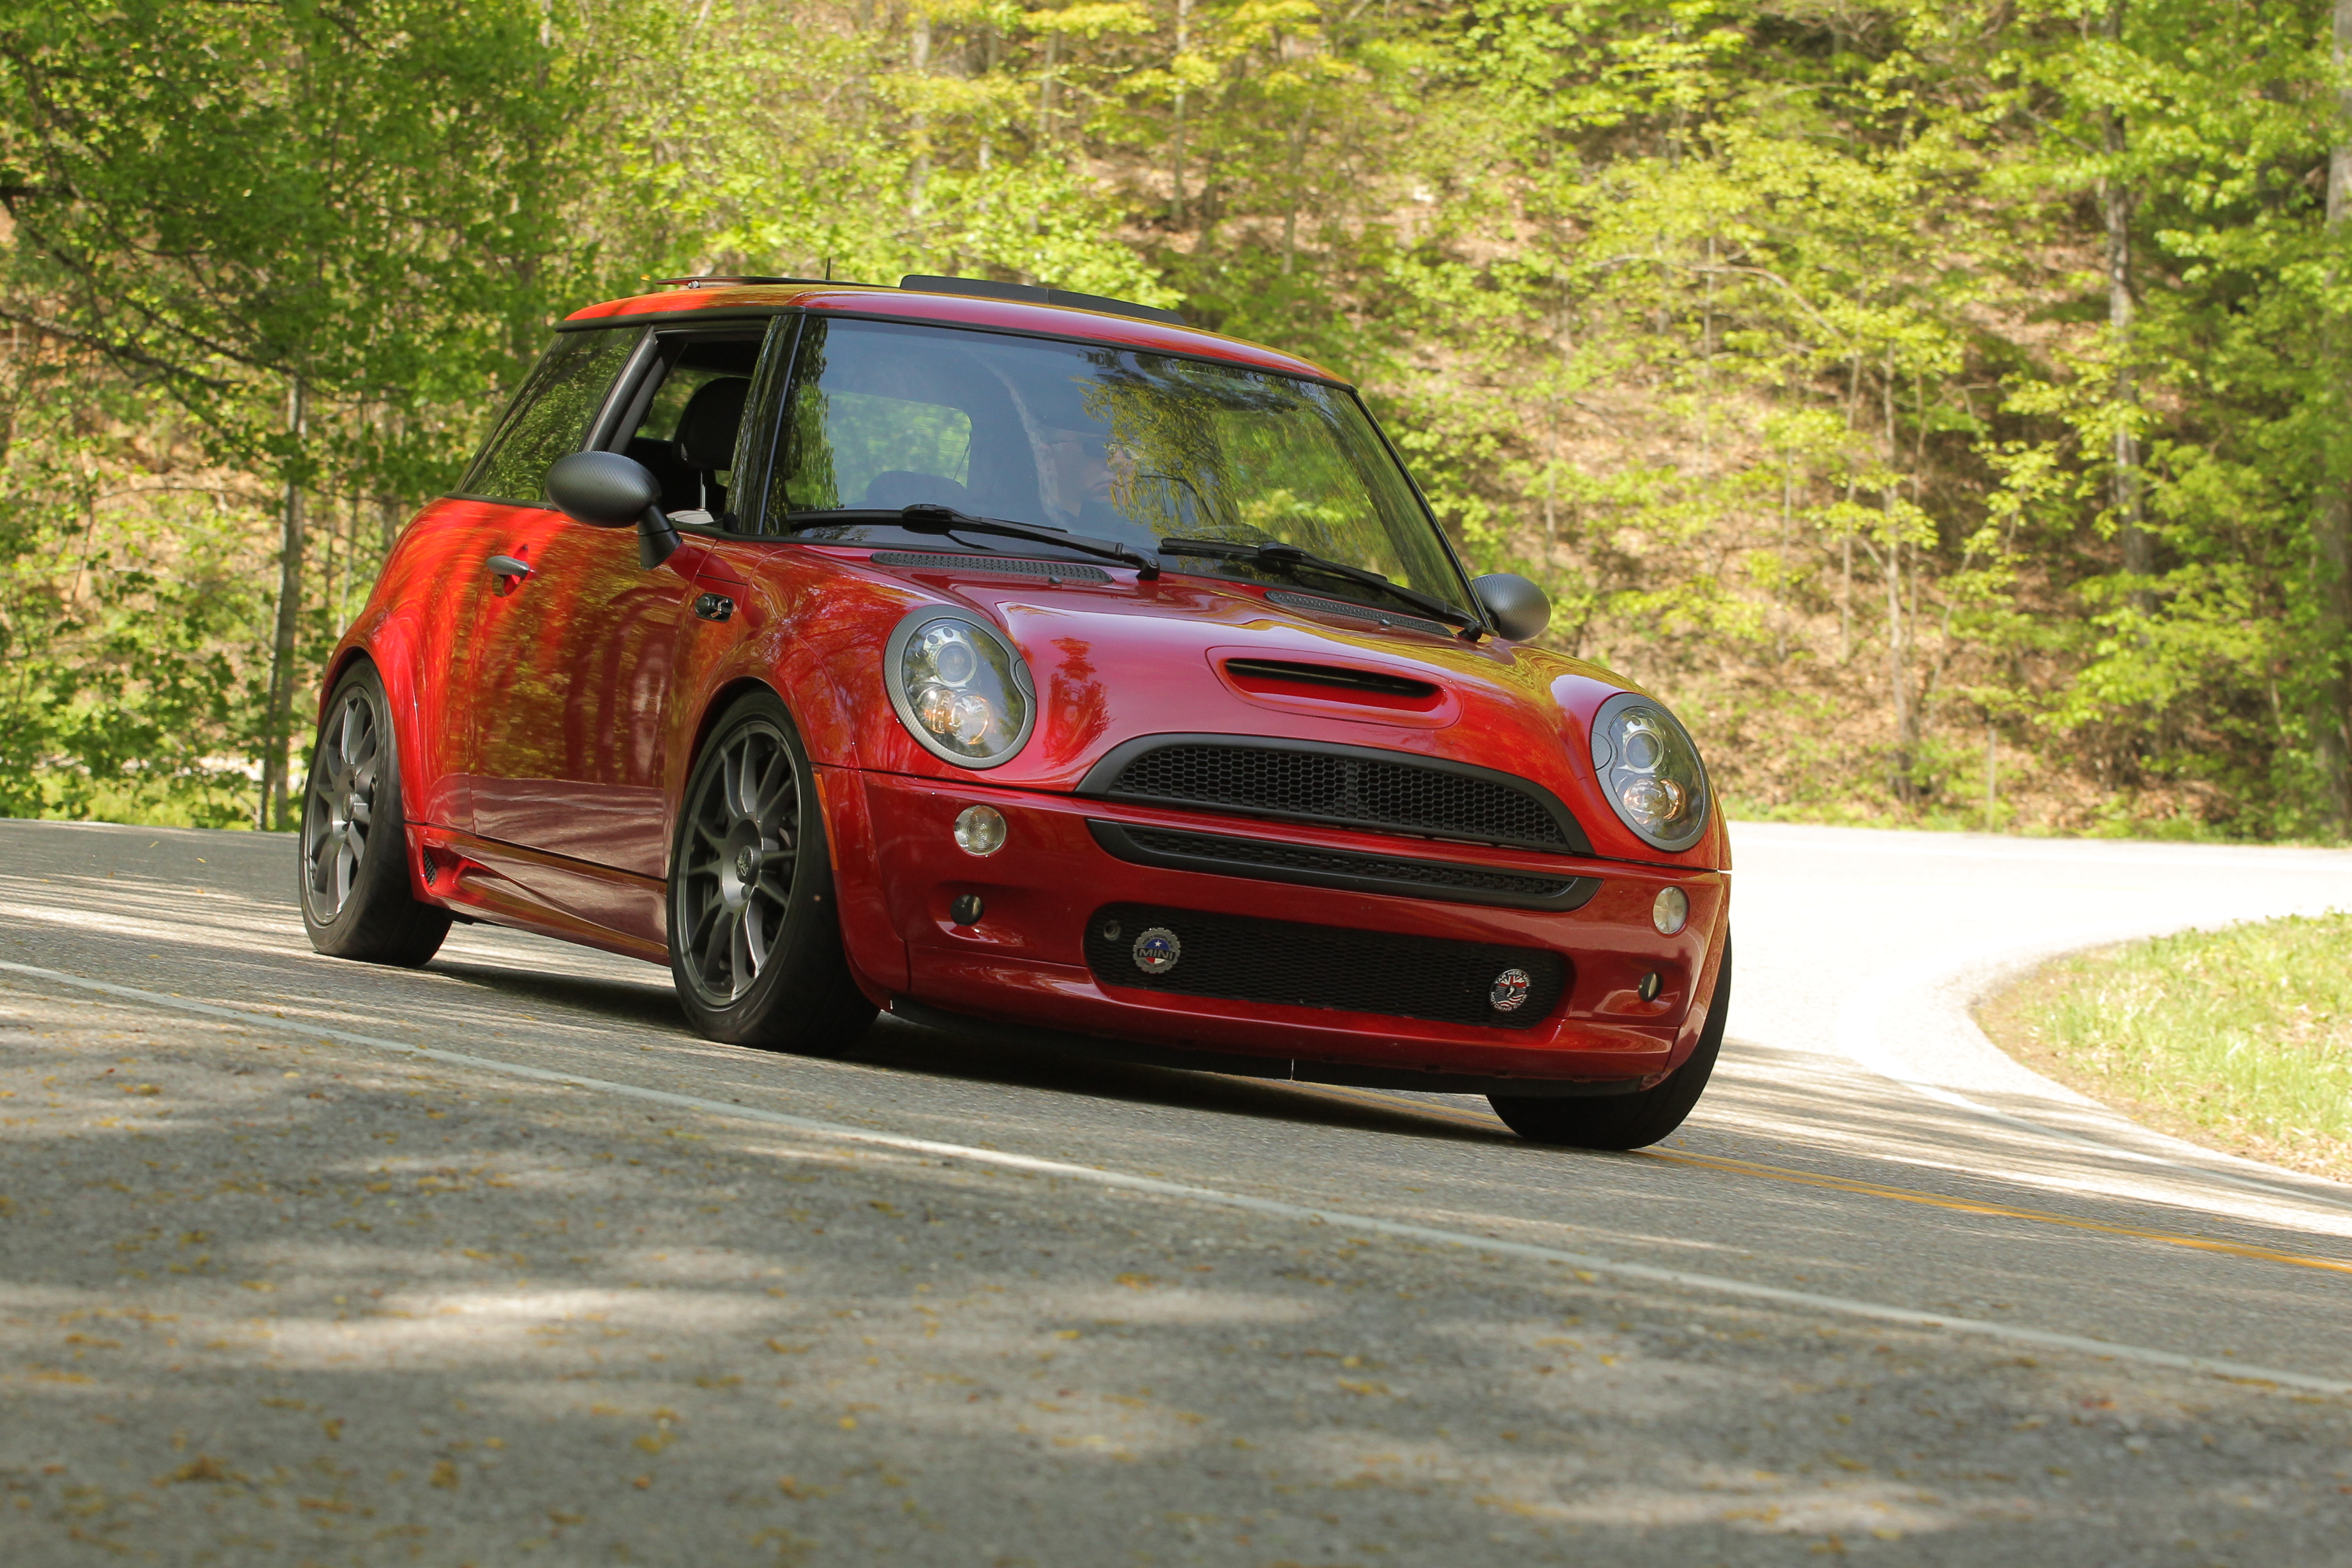 129 Slayer 1st gen - jcw - most liked posts in thread: refreshing rufus